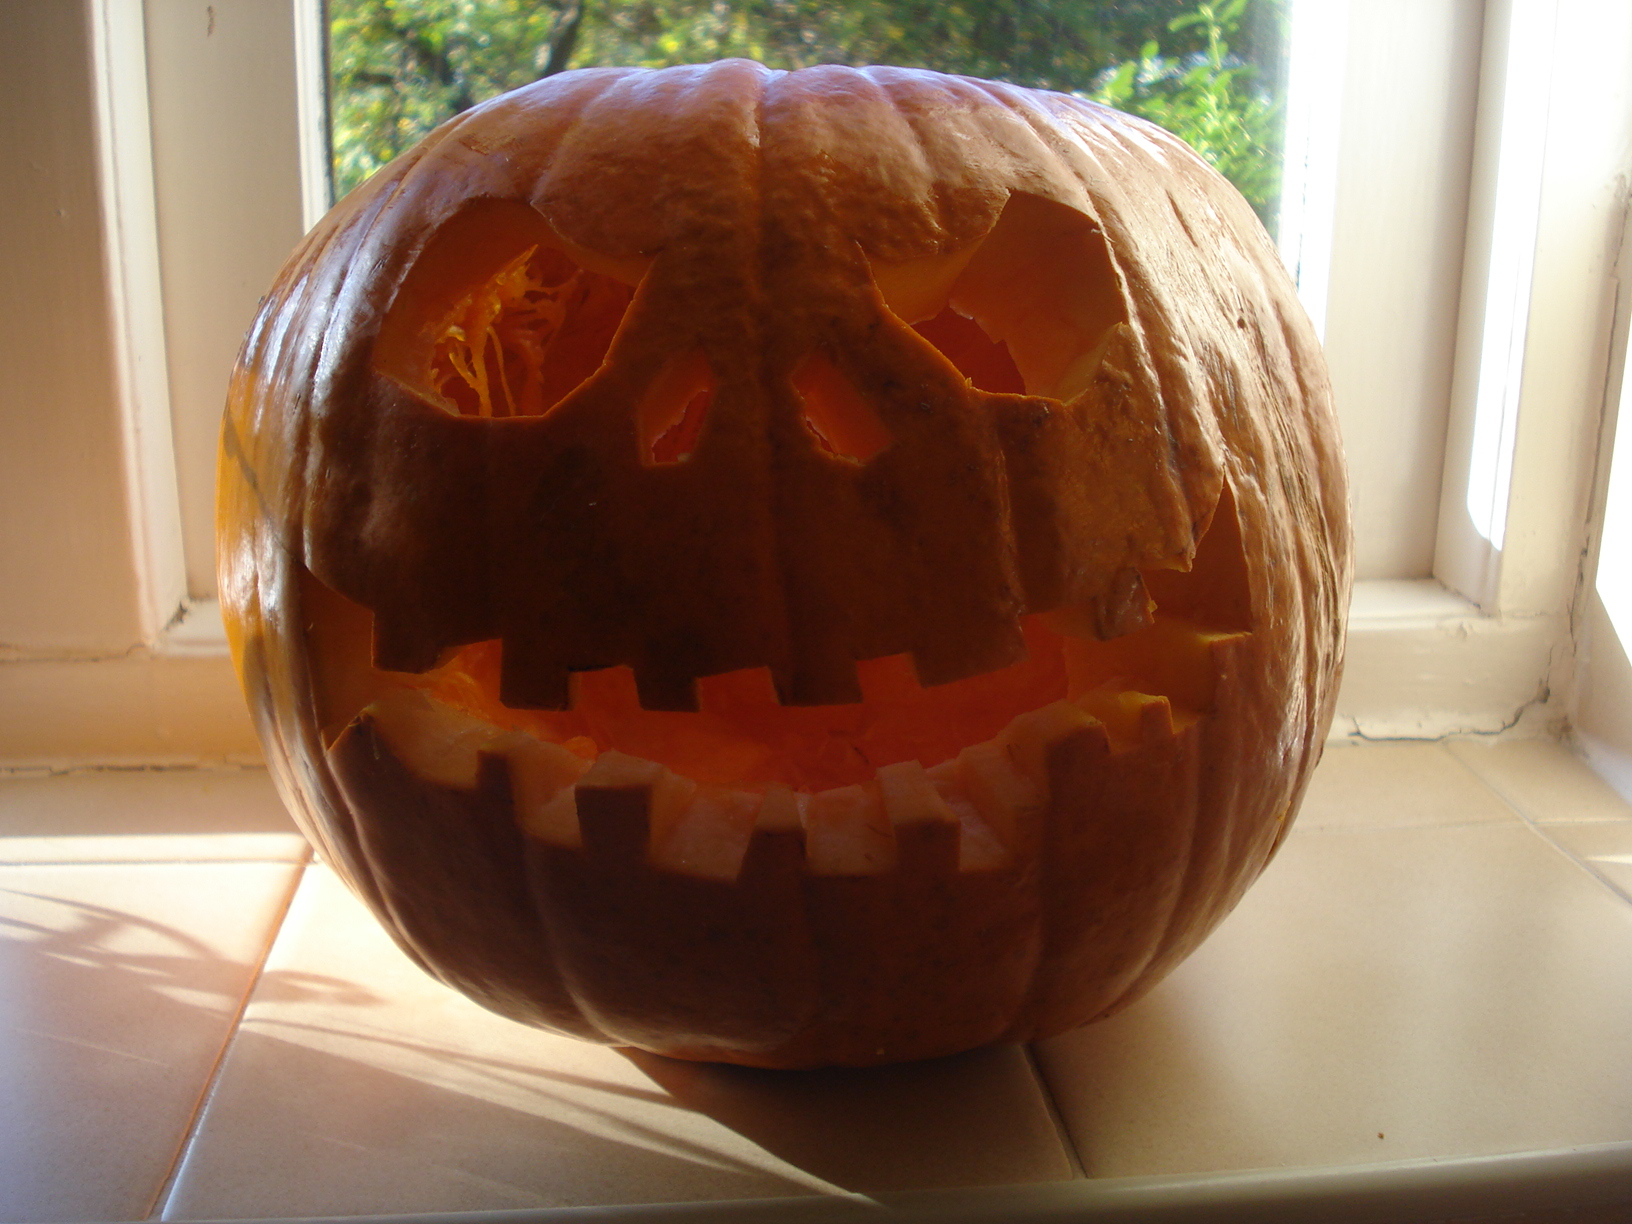 Get Mummy to carve it